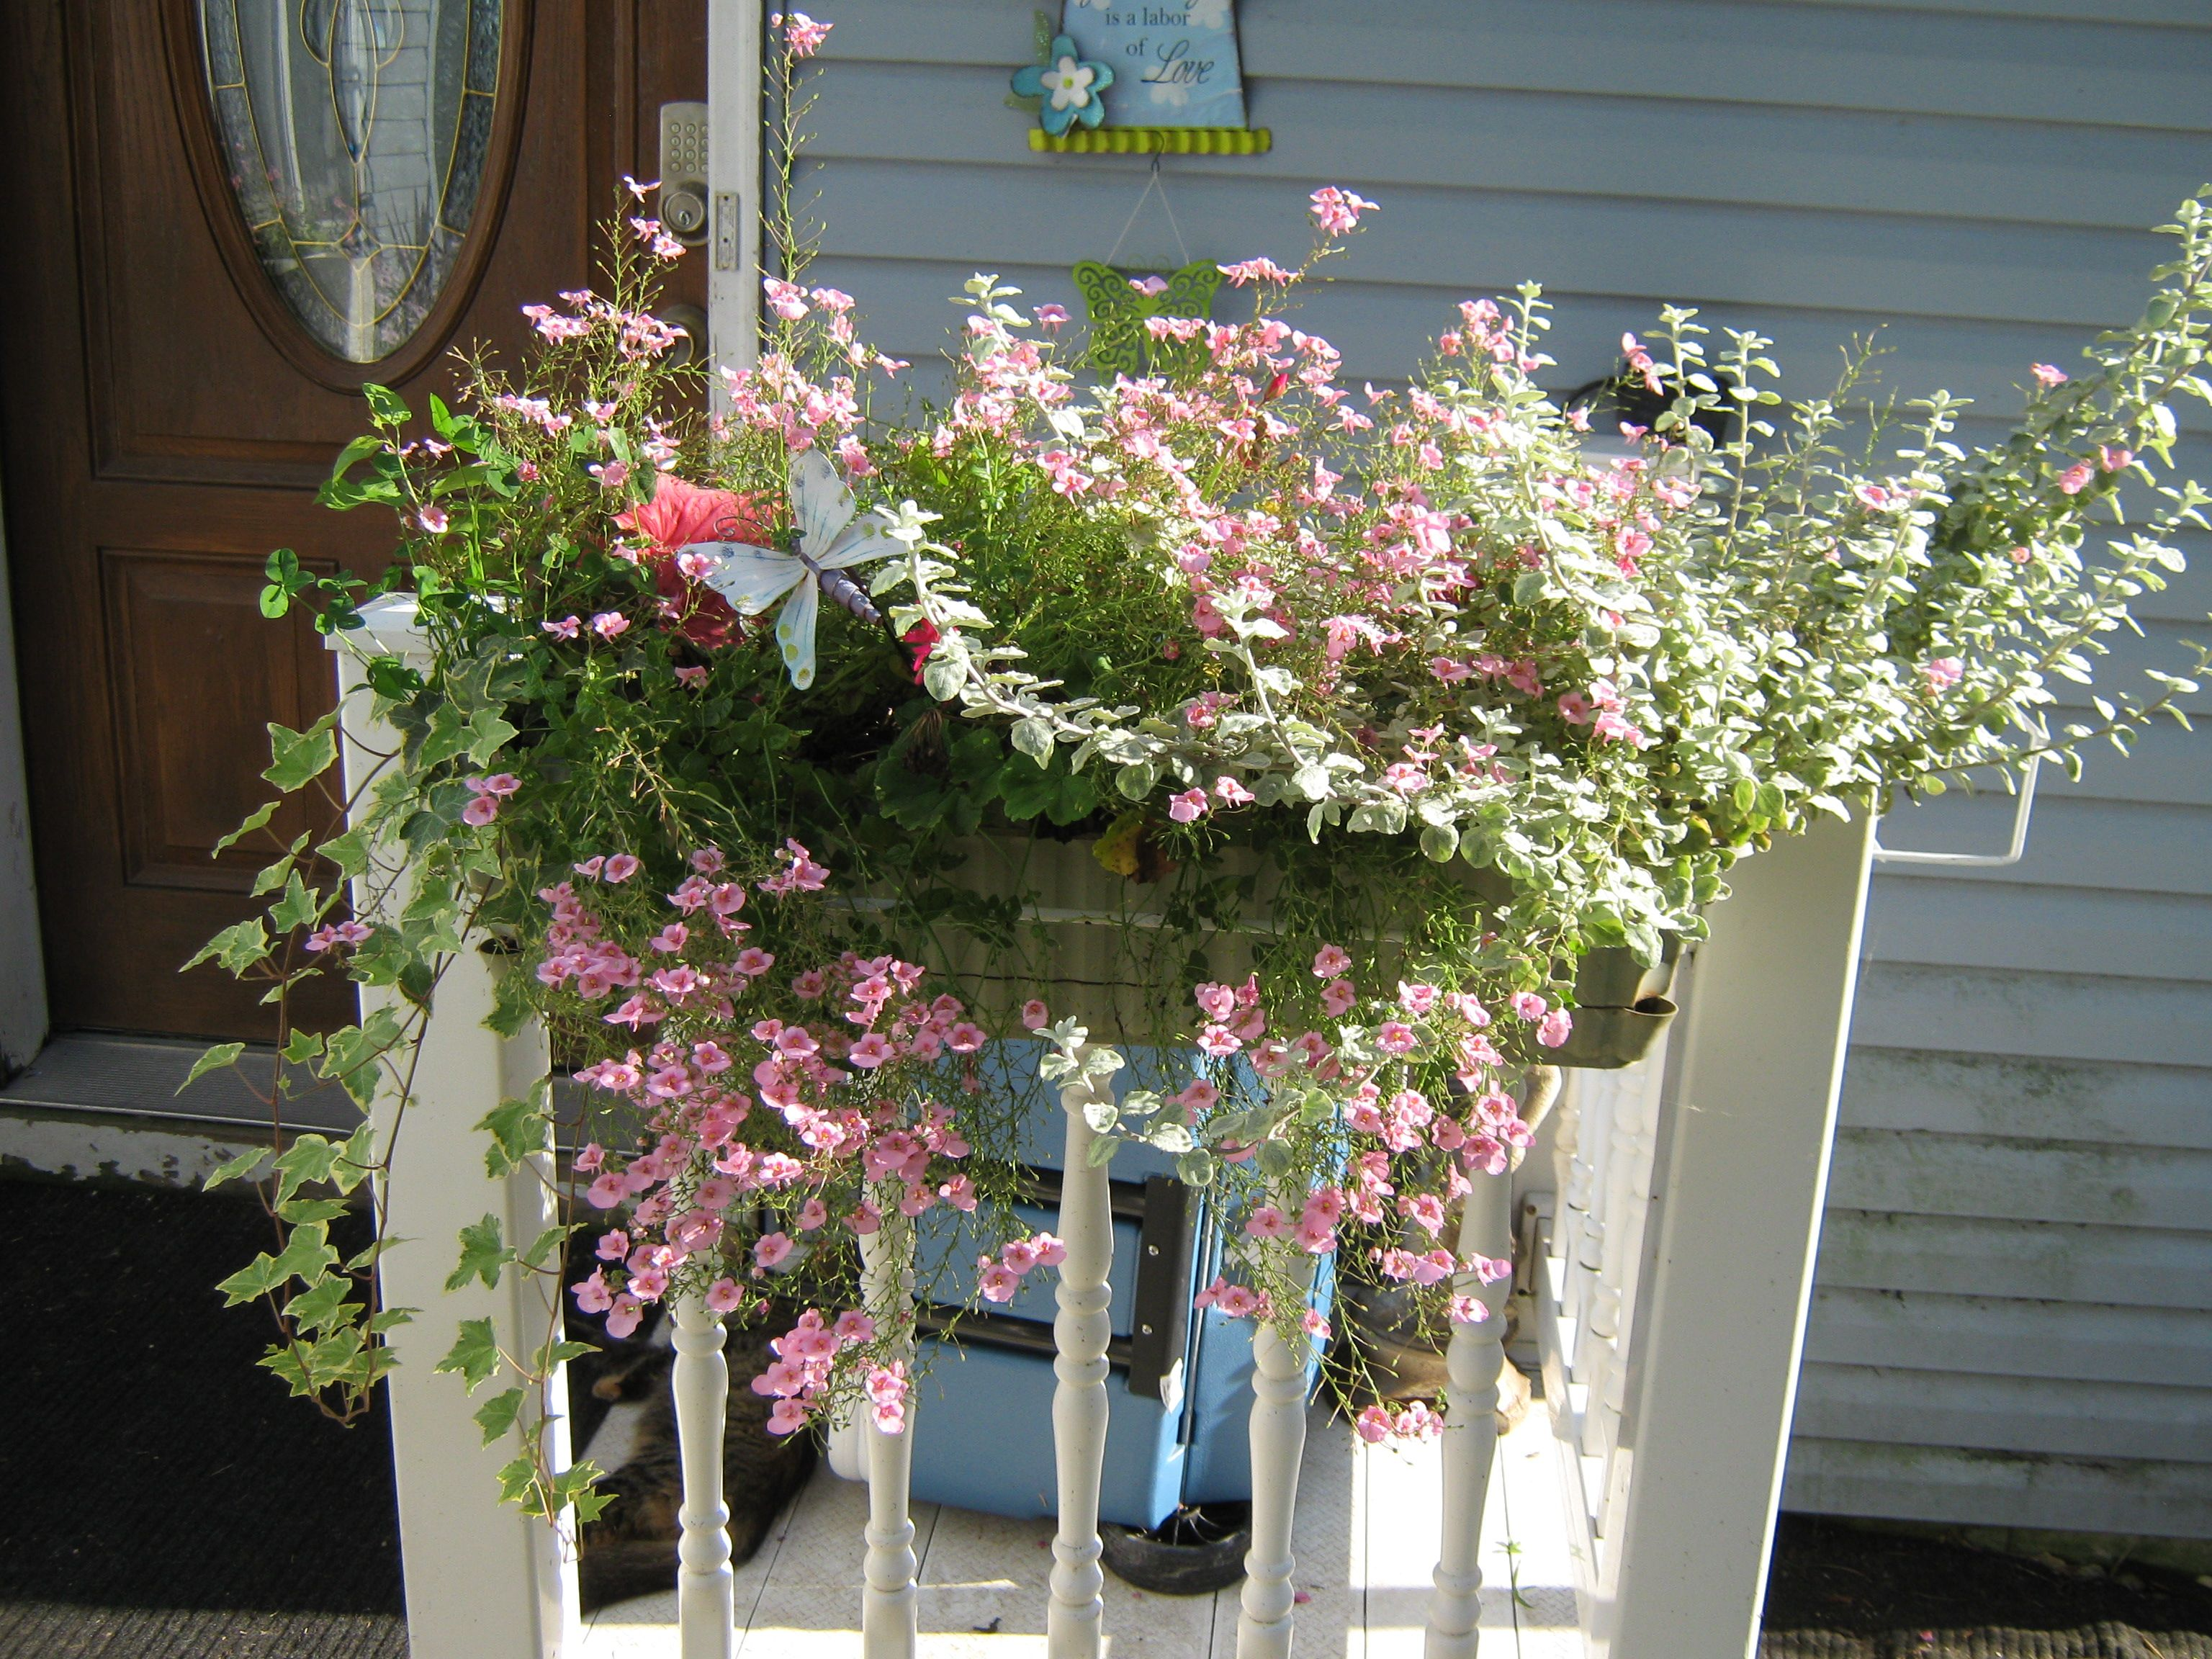 Flower box flowers garden ideas pinterest for Flower garden box ideas